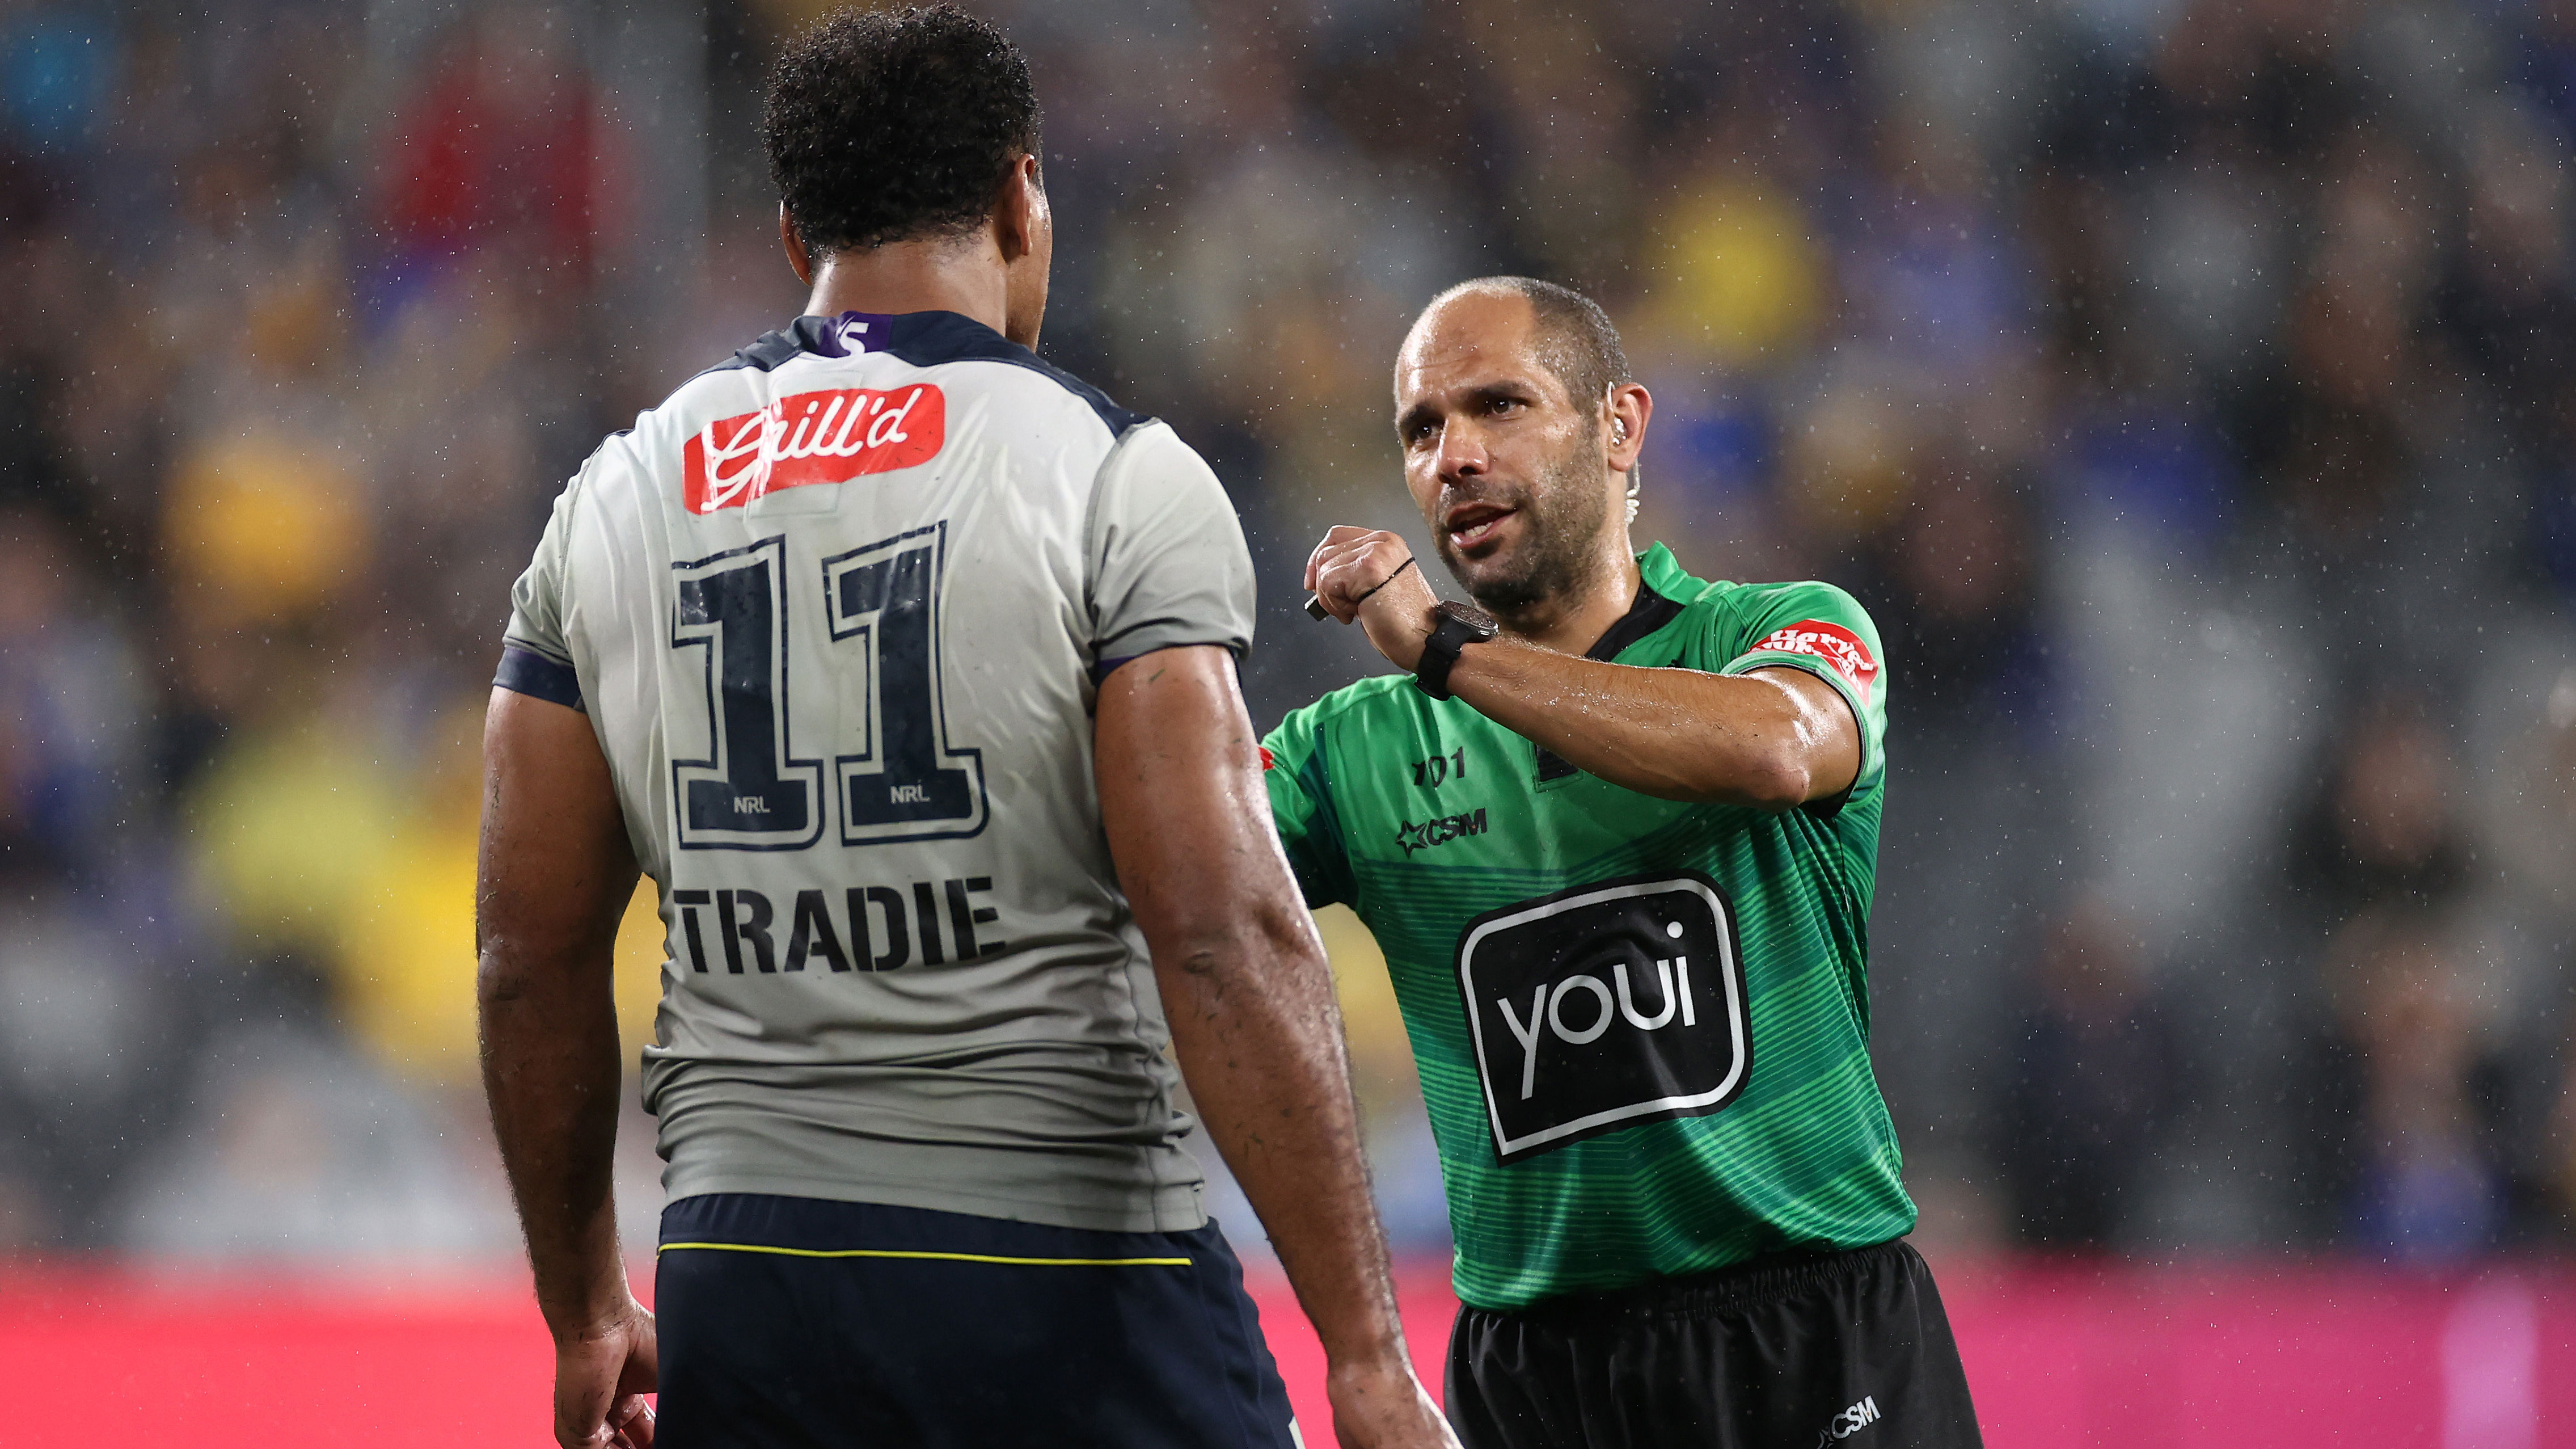 Felise Kaufusi is placed on report by referee Ashley Klein for a high hit on Ryan Matterson.